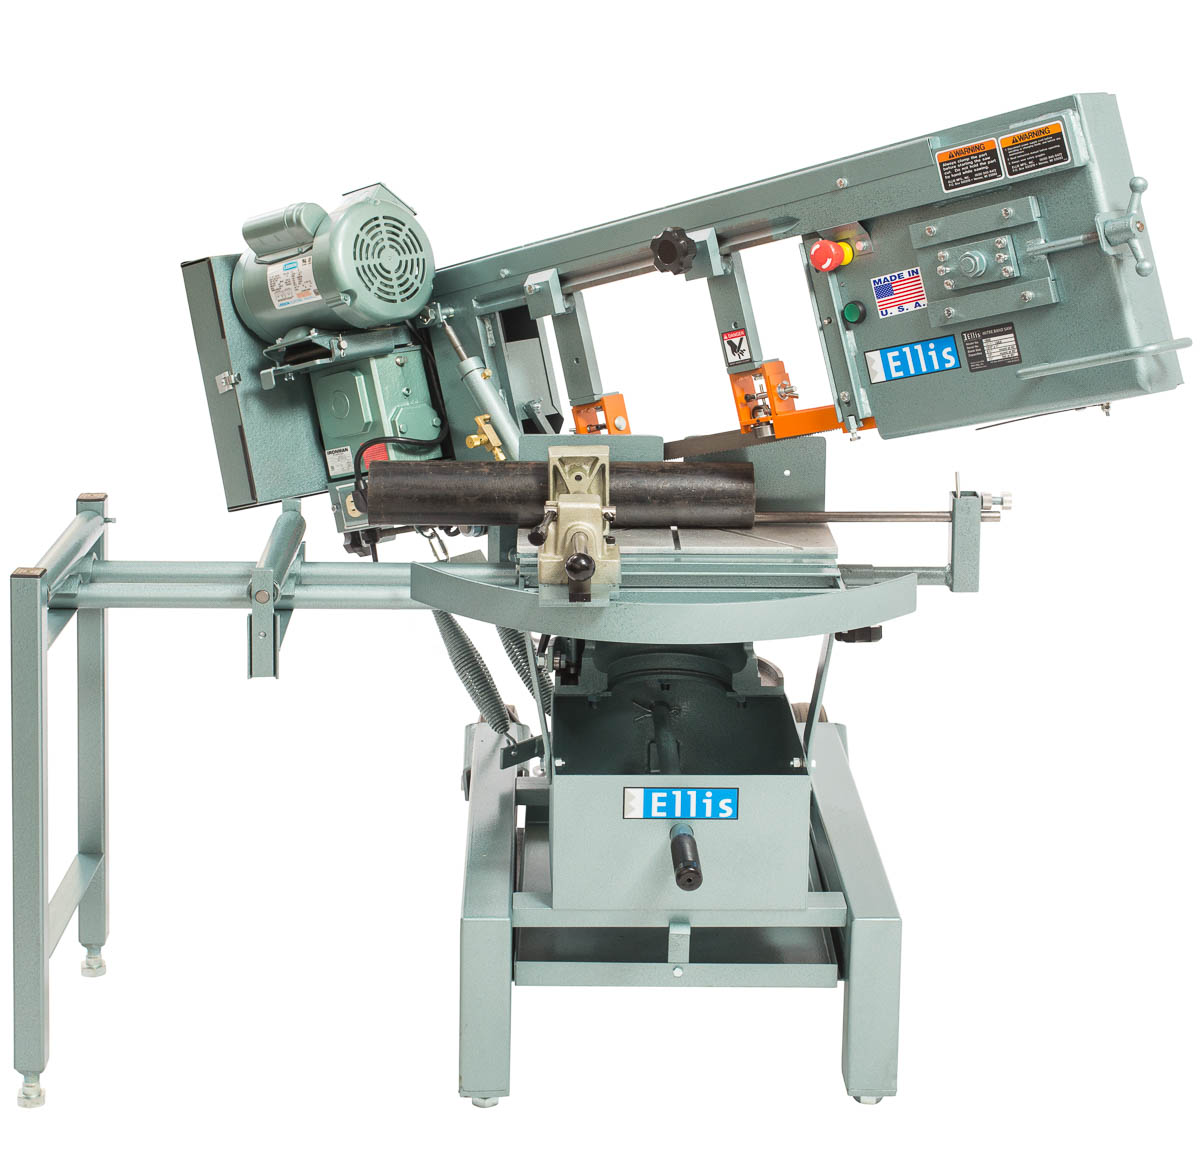 1600 Mitre Band Saw